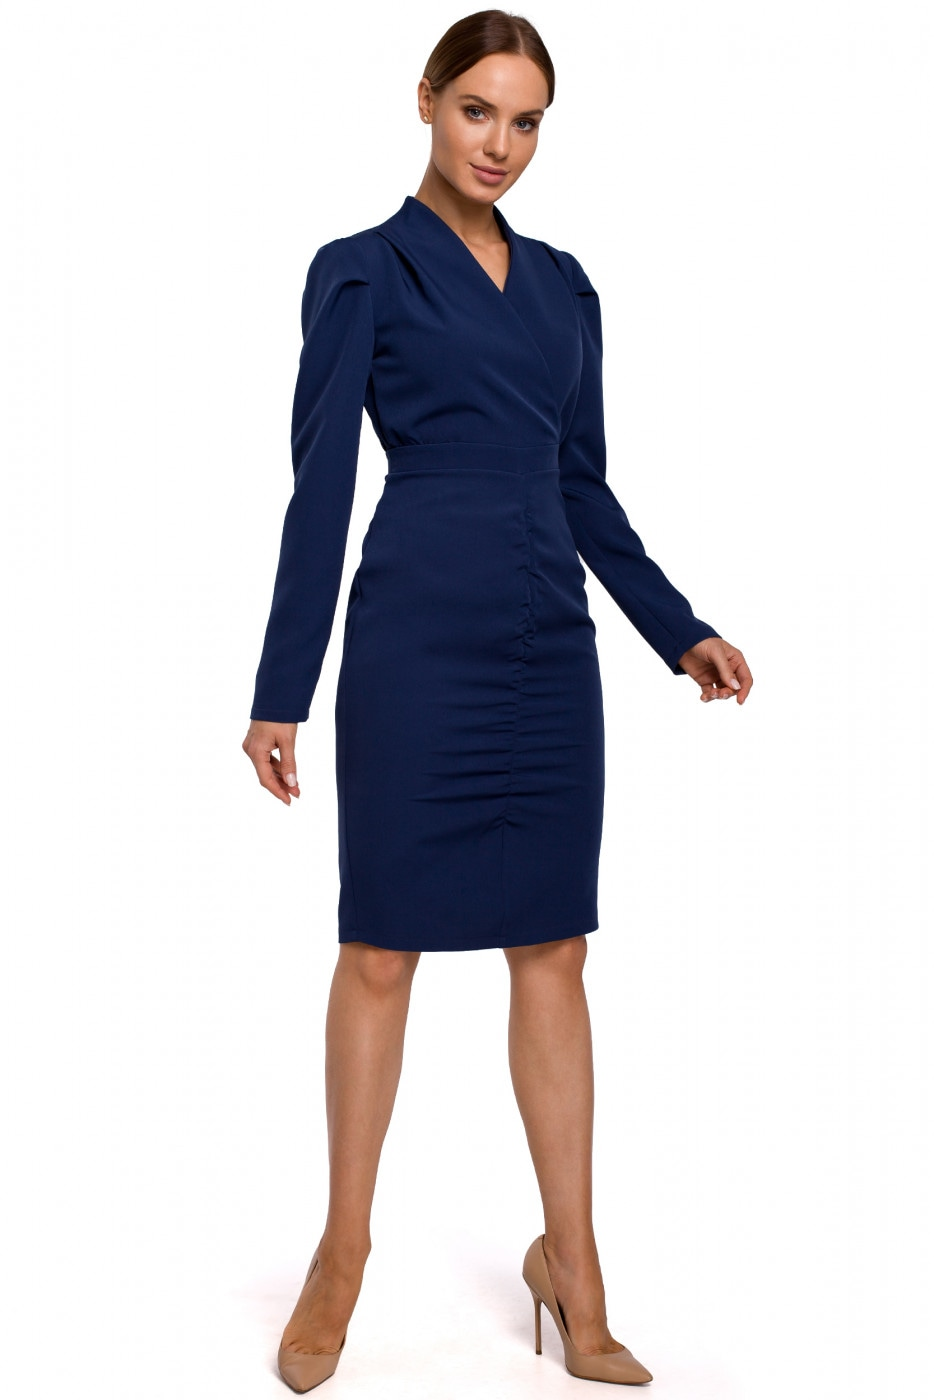 Made Of Emotion Woman's Dress M547 Navy Blue